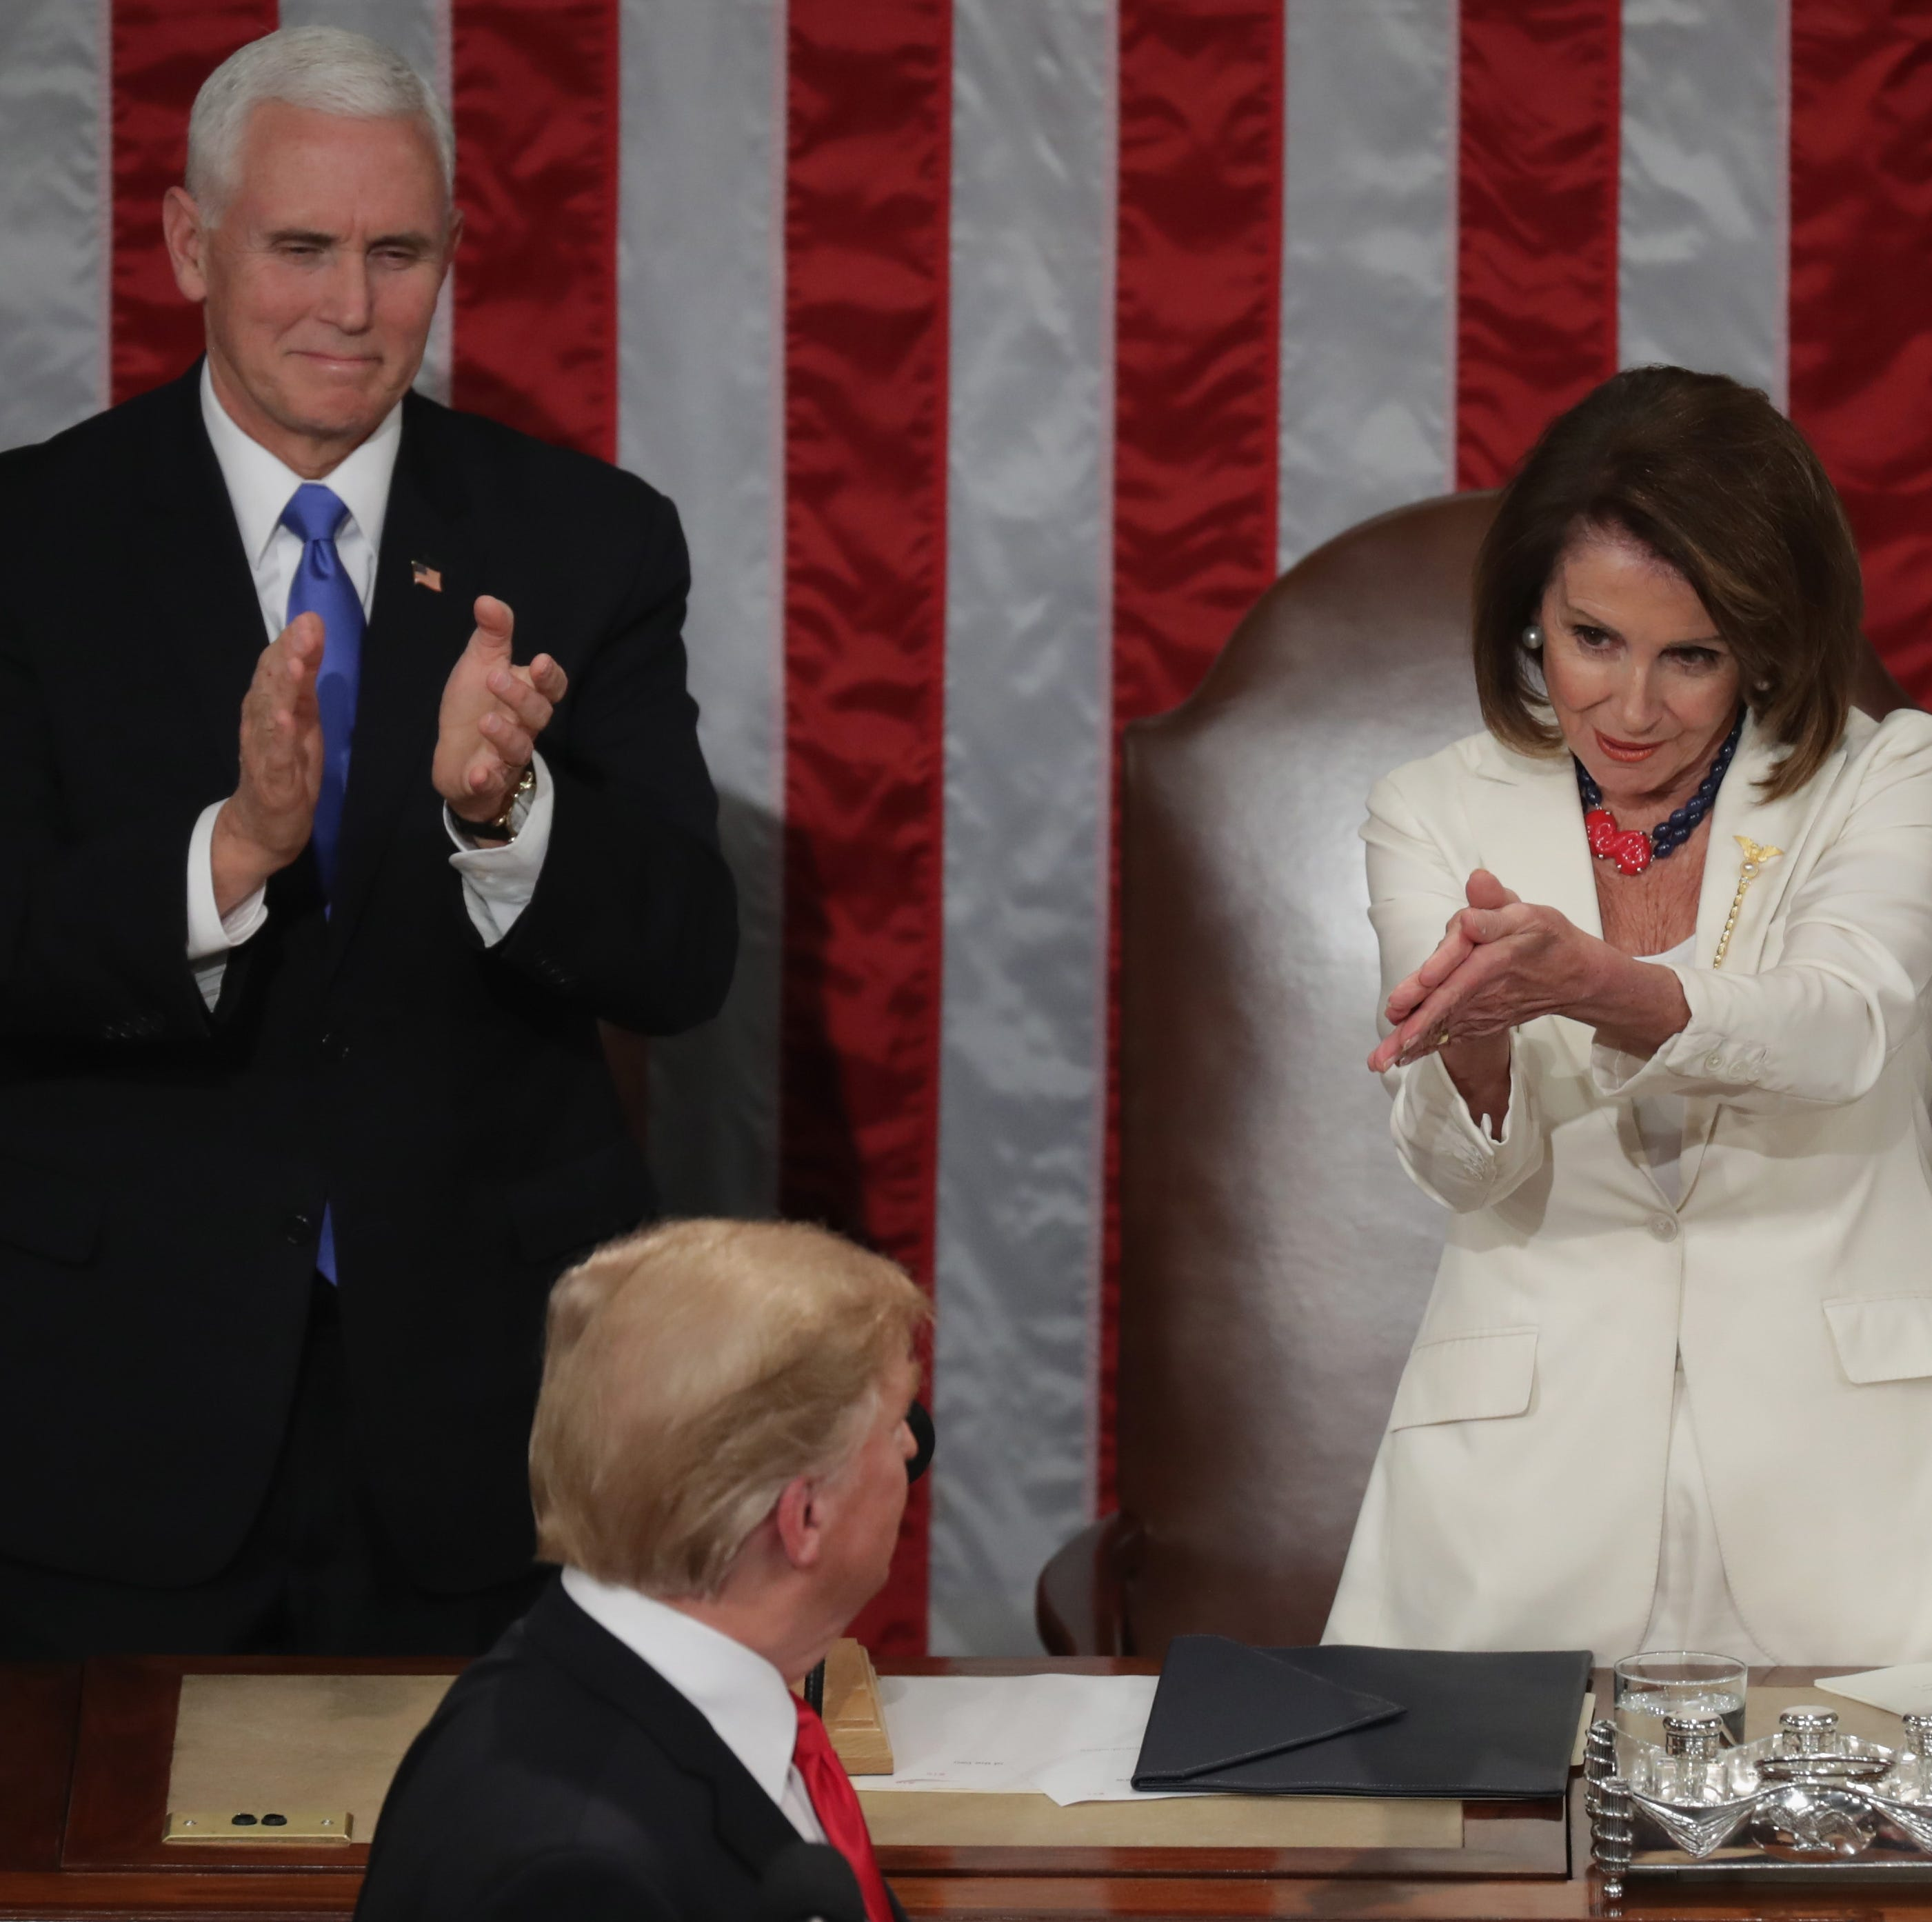 Speaker Nancy Pelosi and Vice President Mike Pence applaud President Donald Trump at the State of the Union address in the chamber of the U.S. House of Representatives at the U.S. Capitol Building on Feb. 5, 2019, in Washington, D.C.